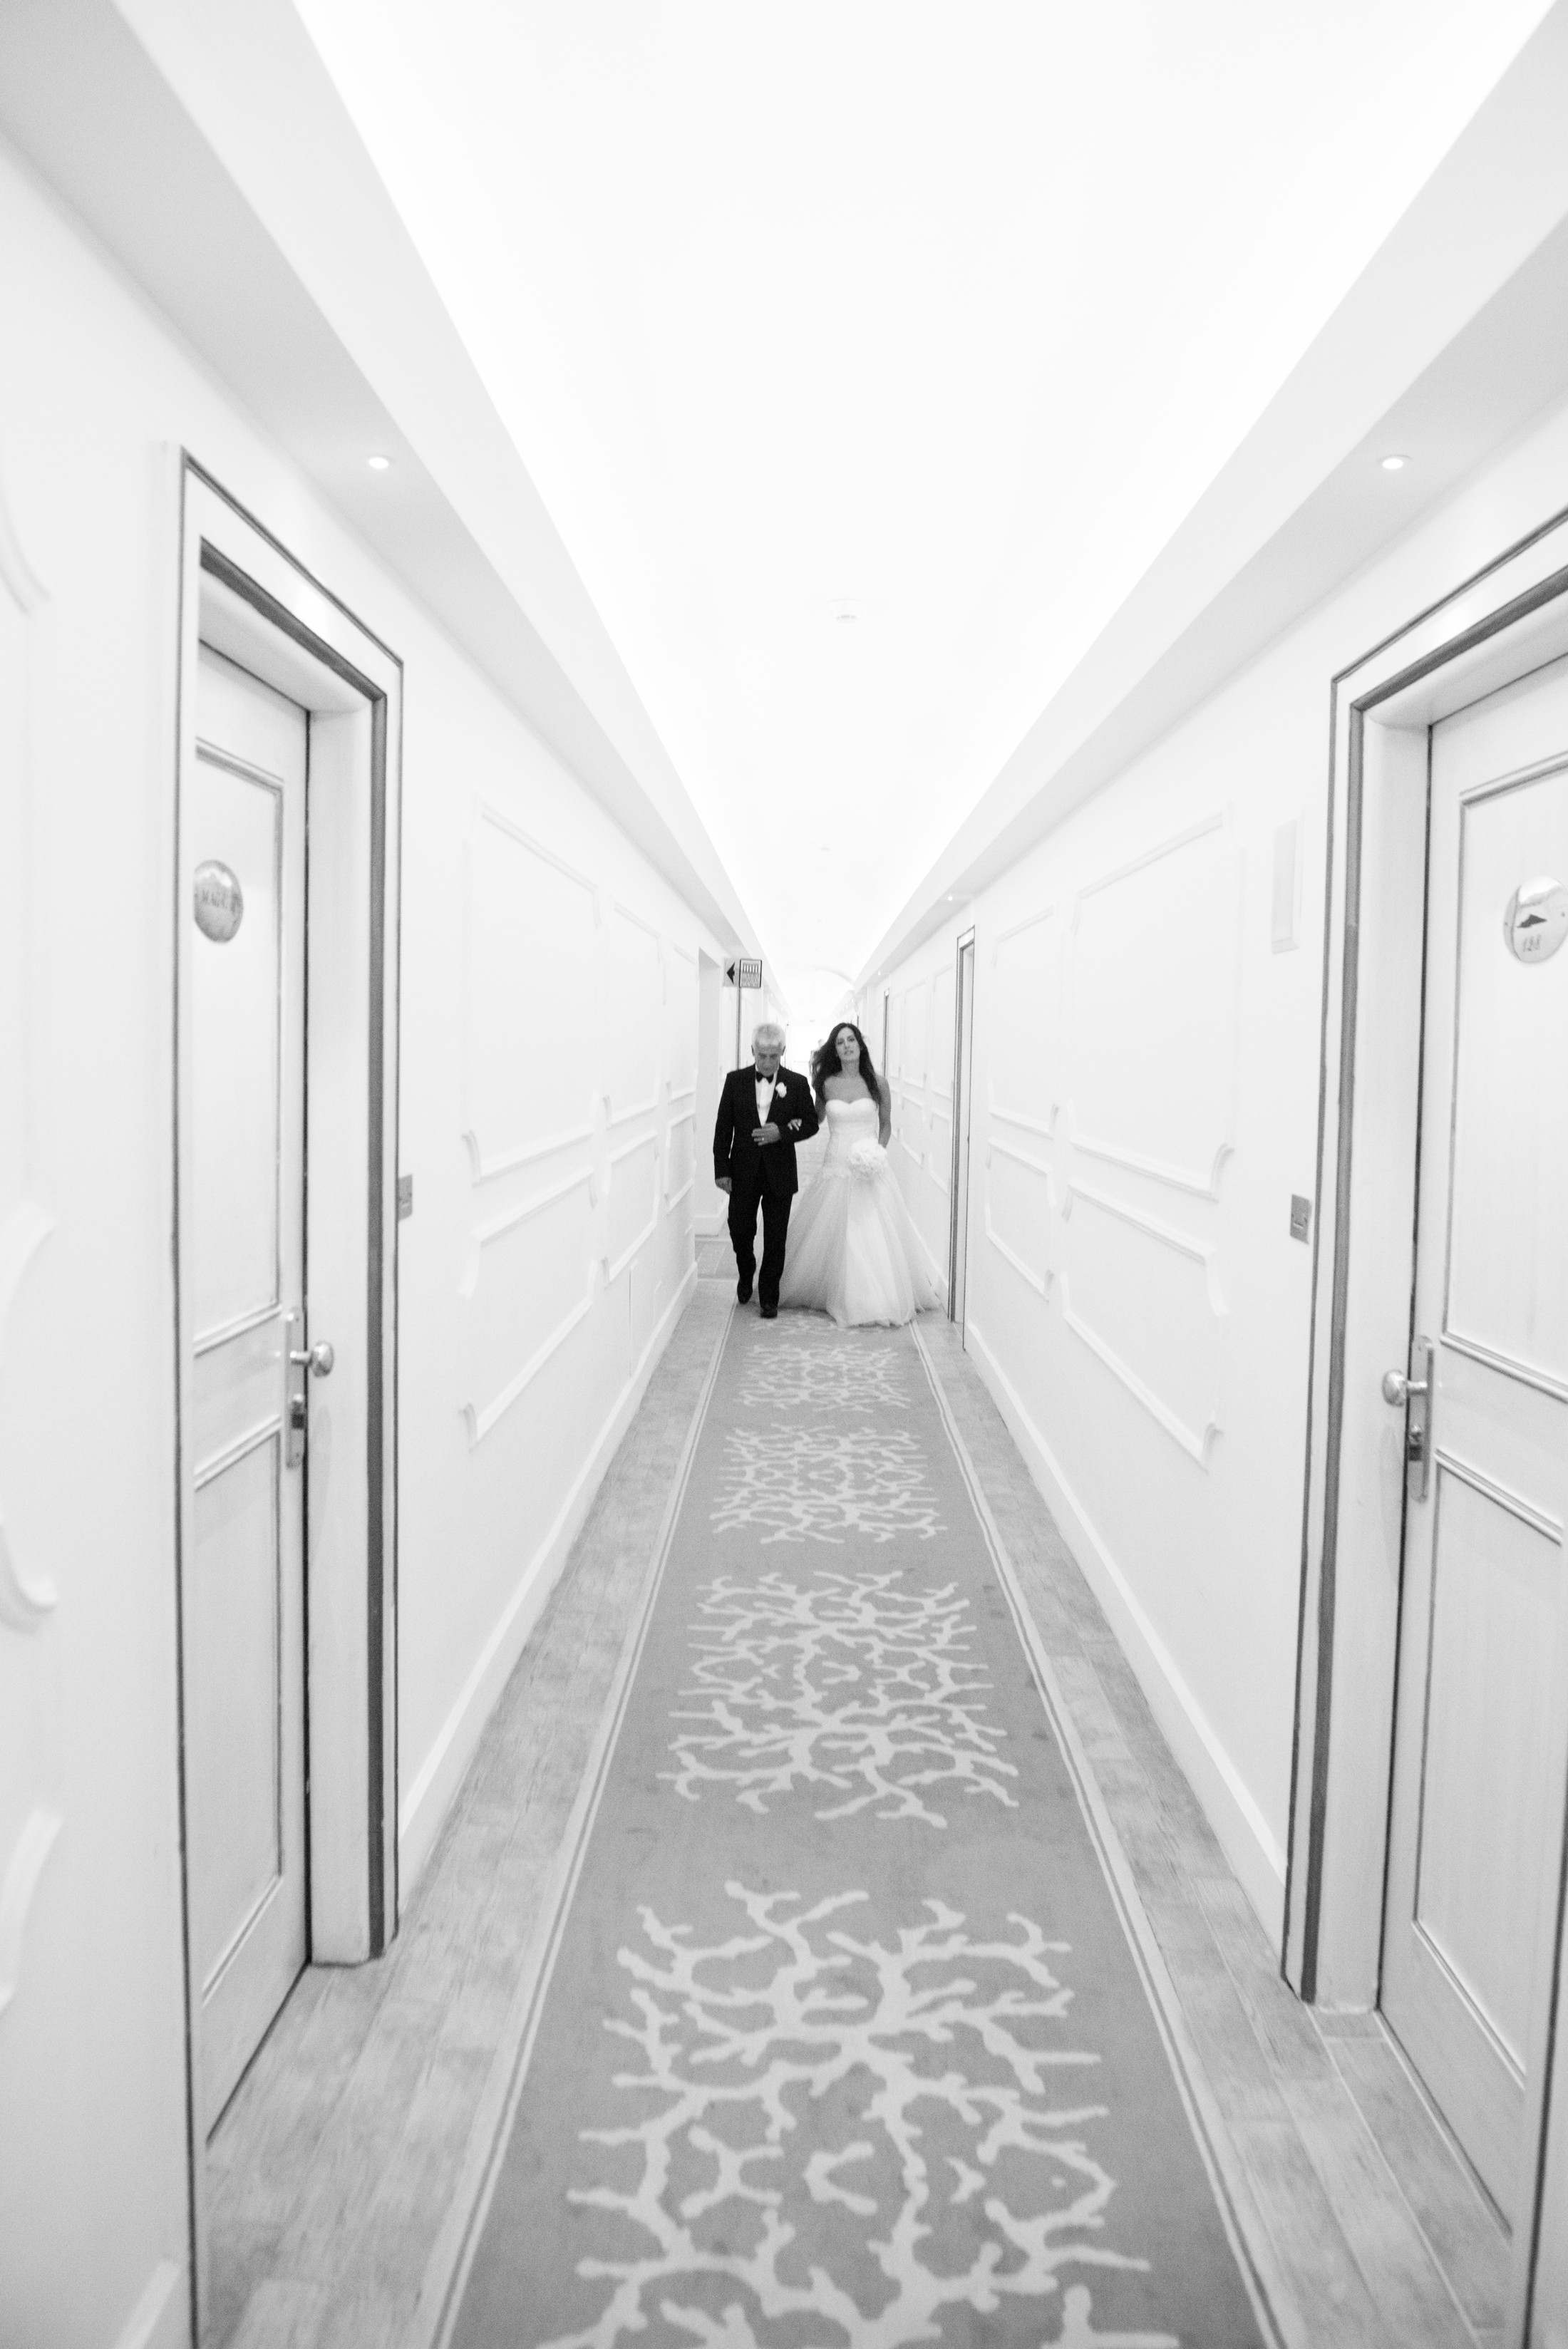 the bride leaves the hotel room with her father